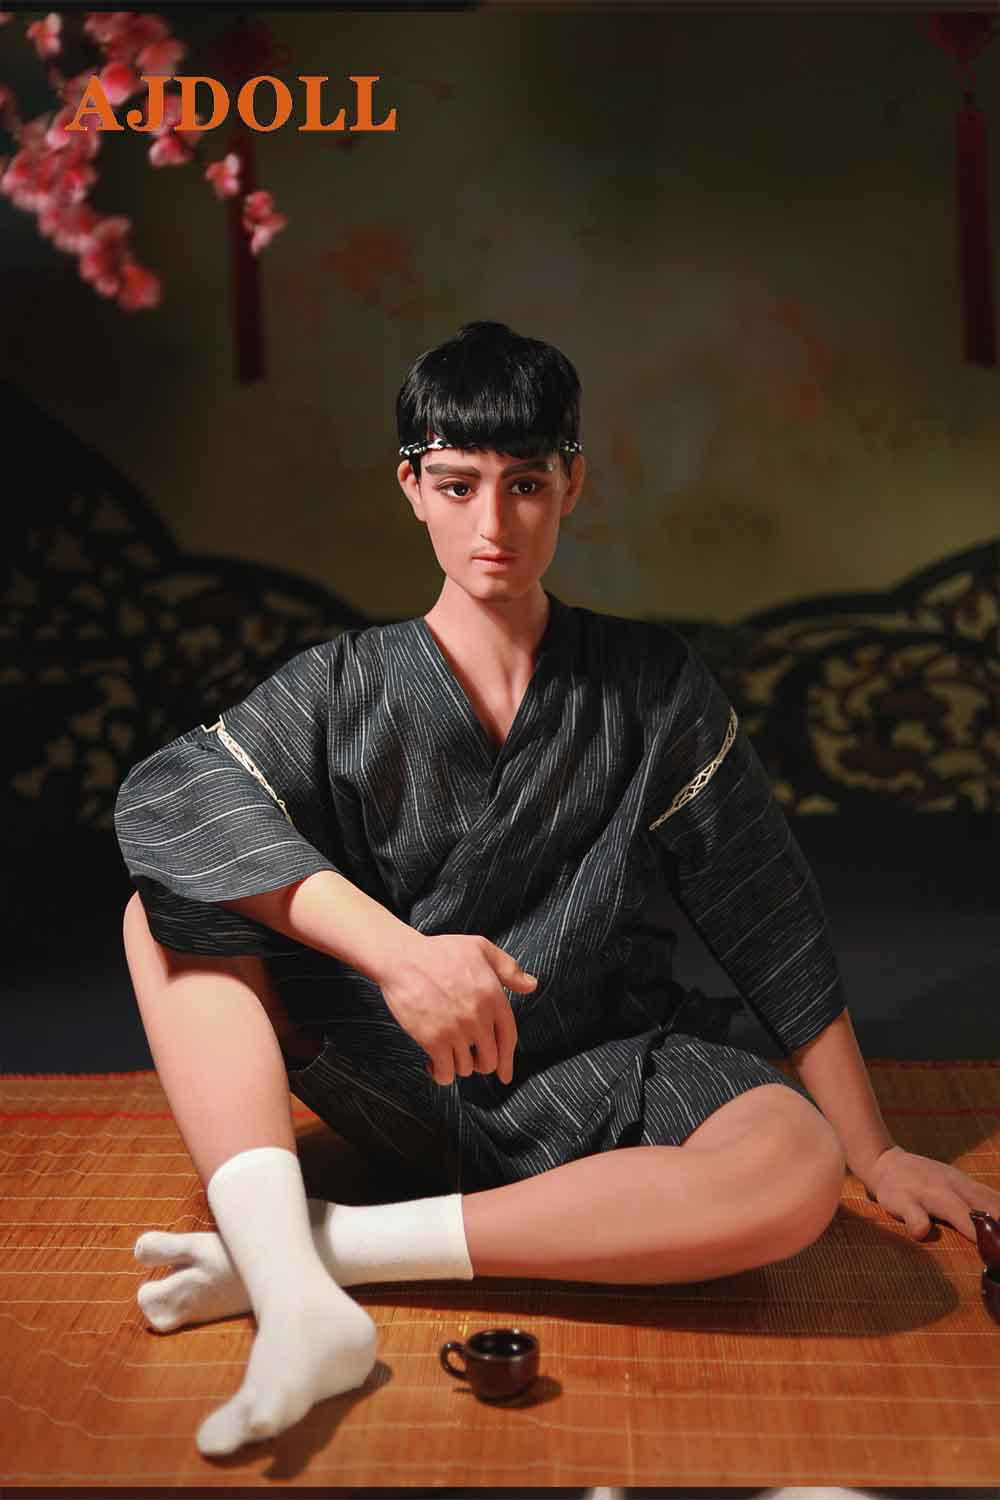 Male sex doll sitting on the mat